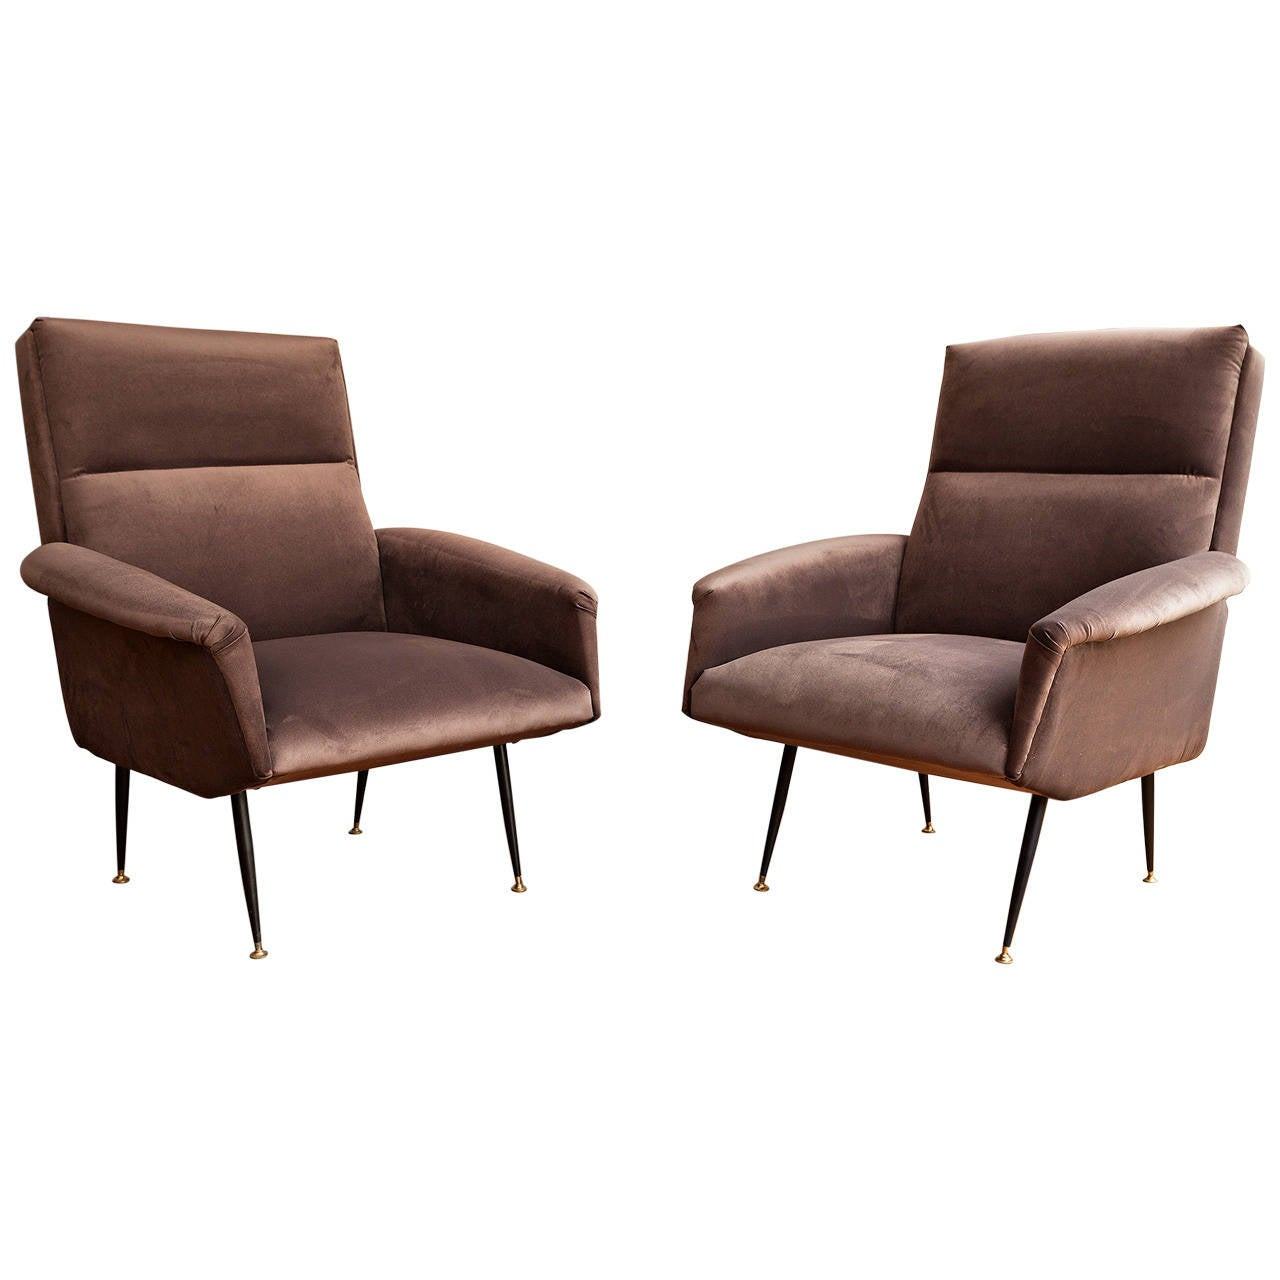 Pair of Armchairs, Italy circa 1950